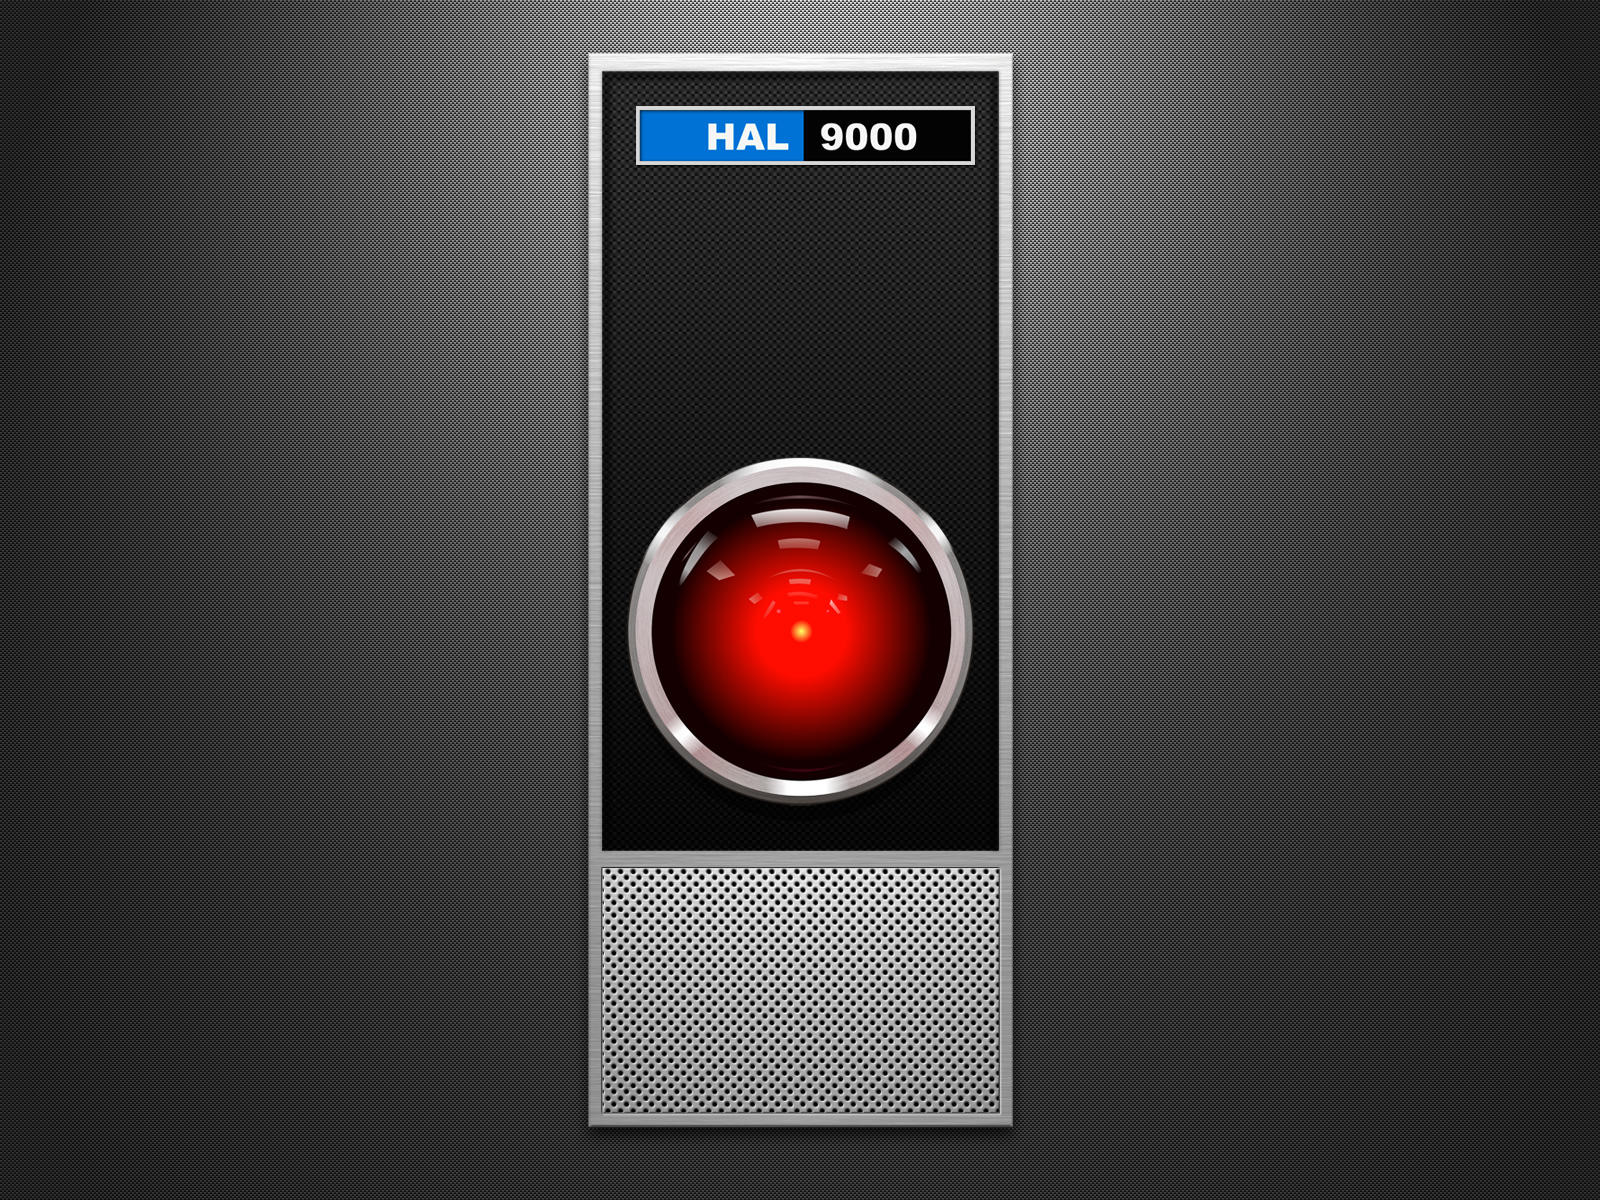 hal 9000 by jyrik on deviantart